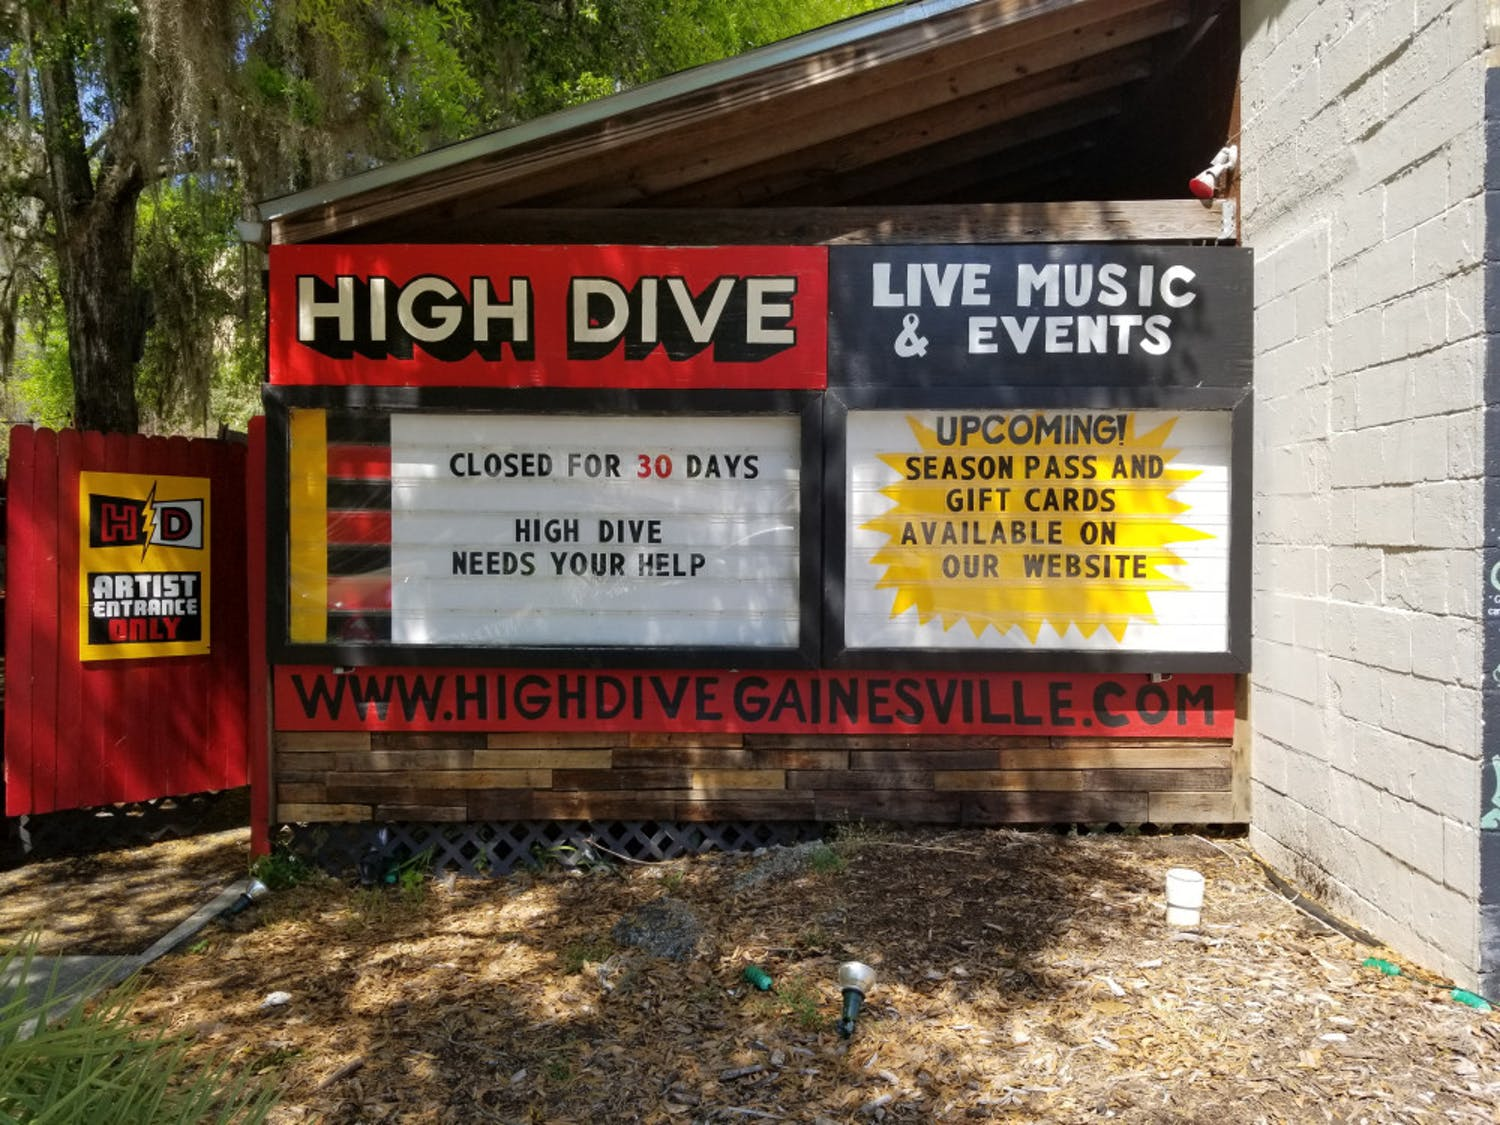 Gainesville's The Florida Theatre, High Dive and The Fest punk festival, have joined the National Independent Venue Association, along with 1,600 other venues nationwide.